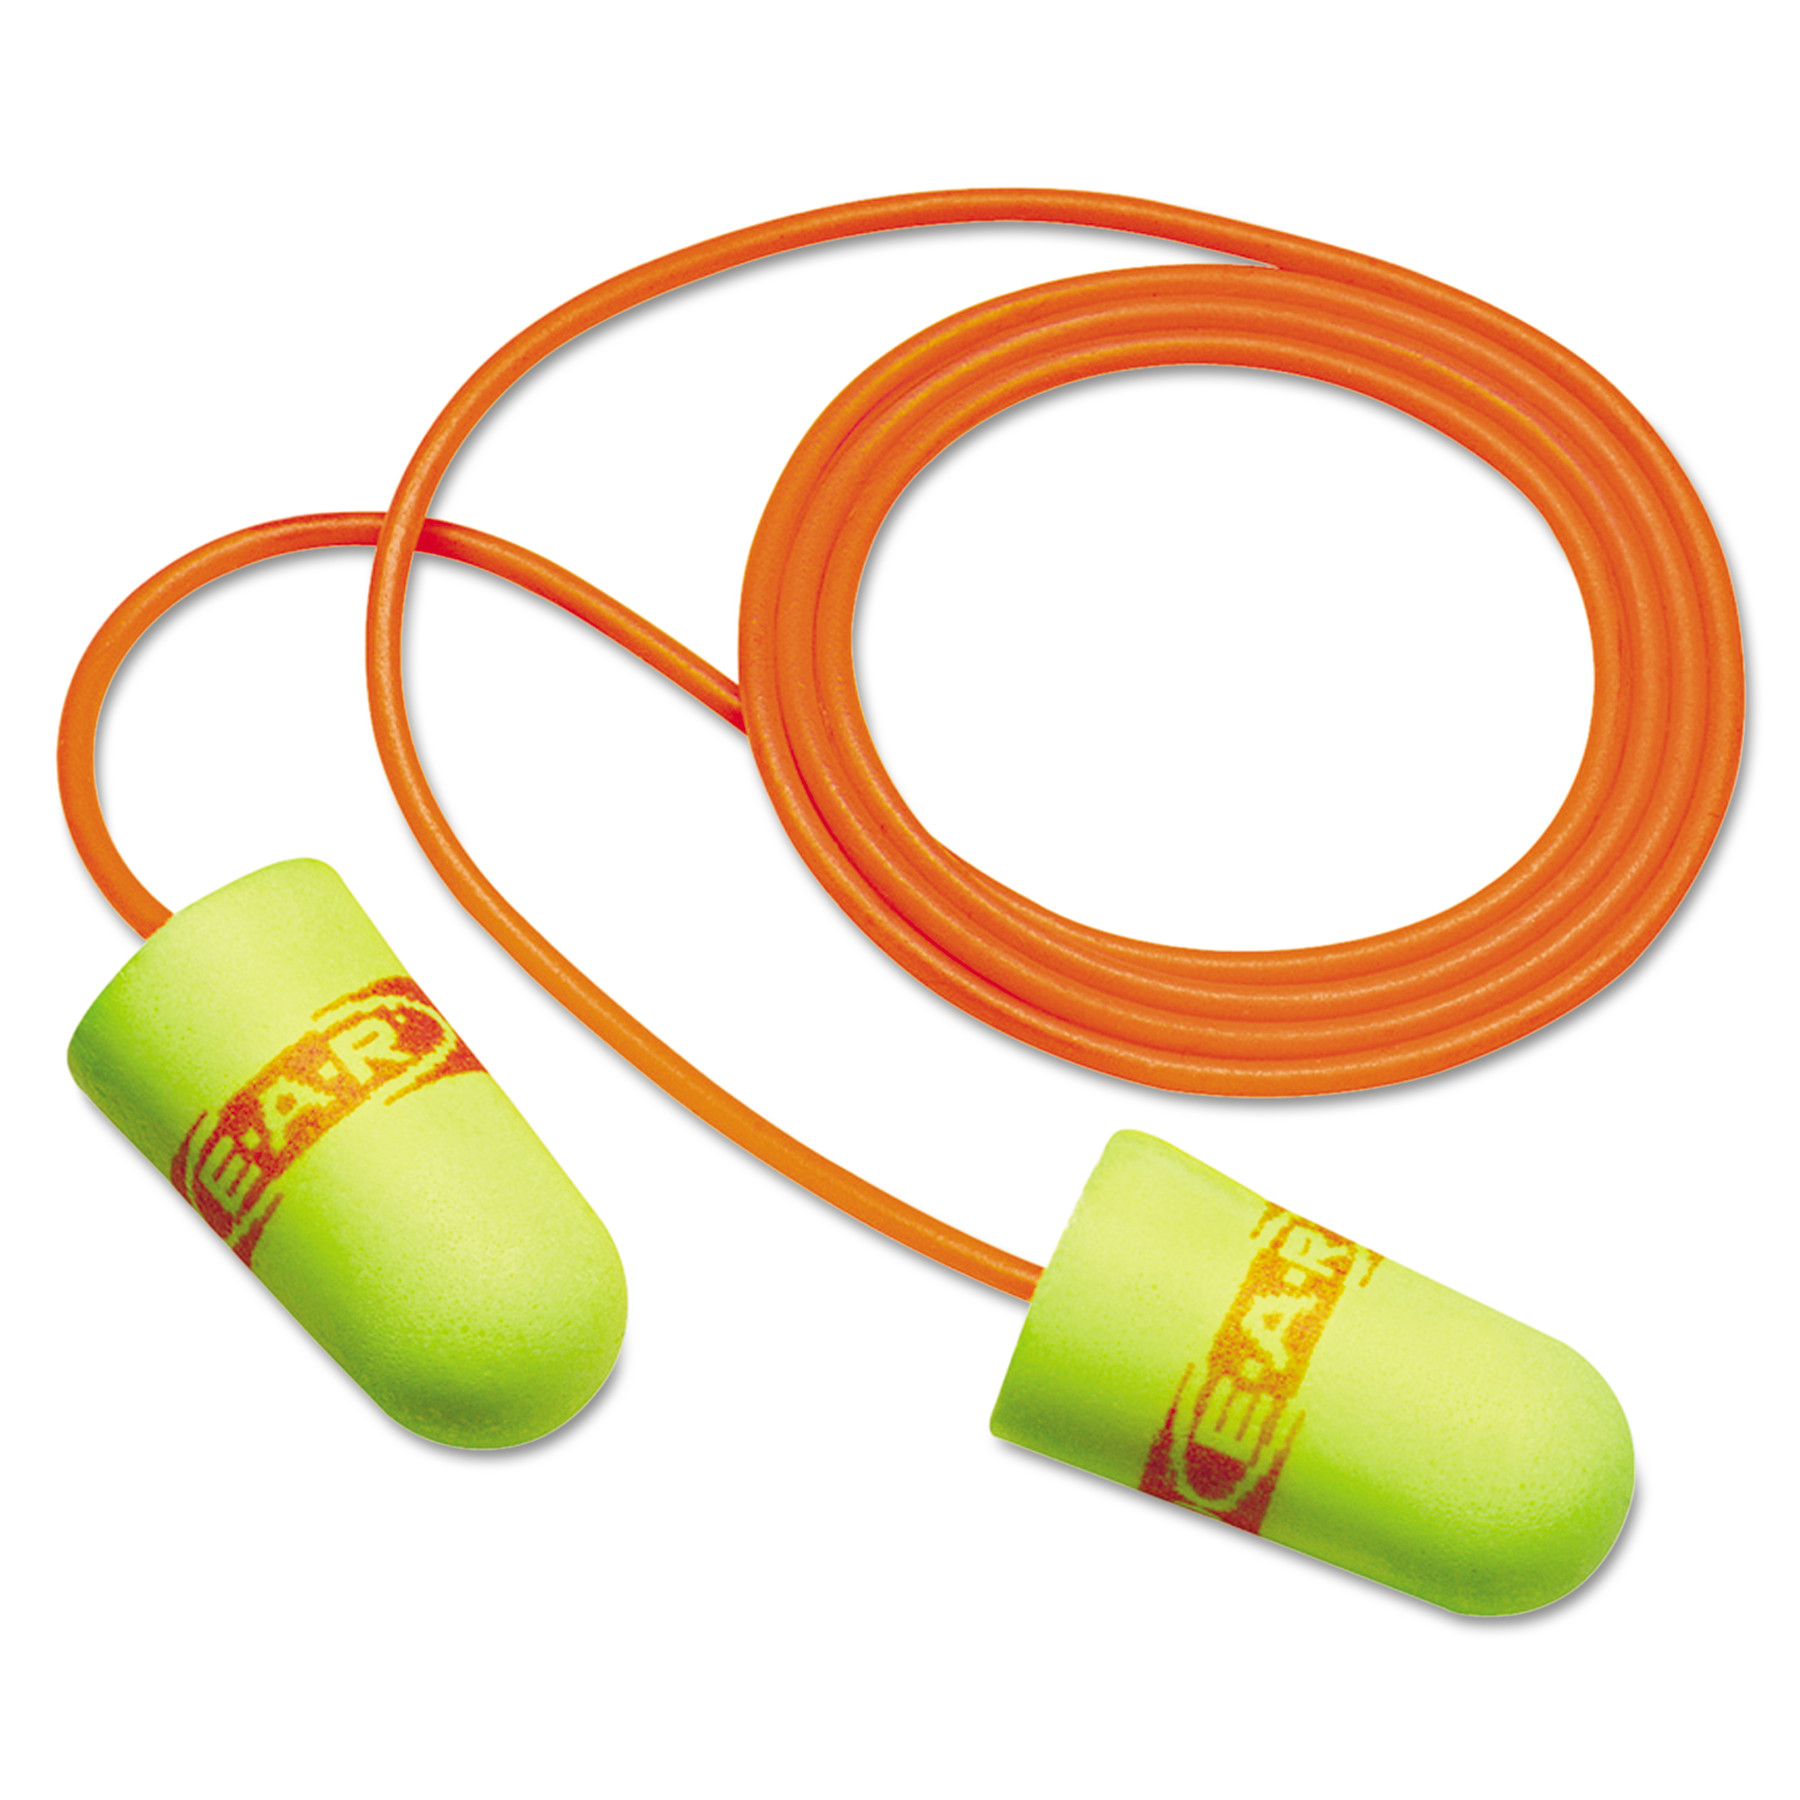 3M E·A·Rsoft SuperFit Single-Use Earplugs, Corded, 33NRR, Yellow/Red, 200 Pairs